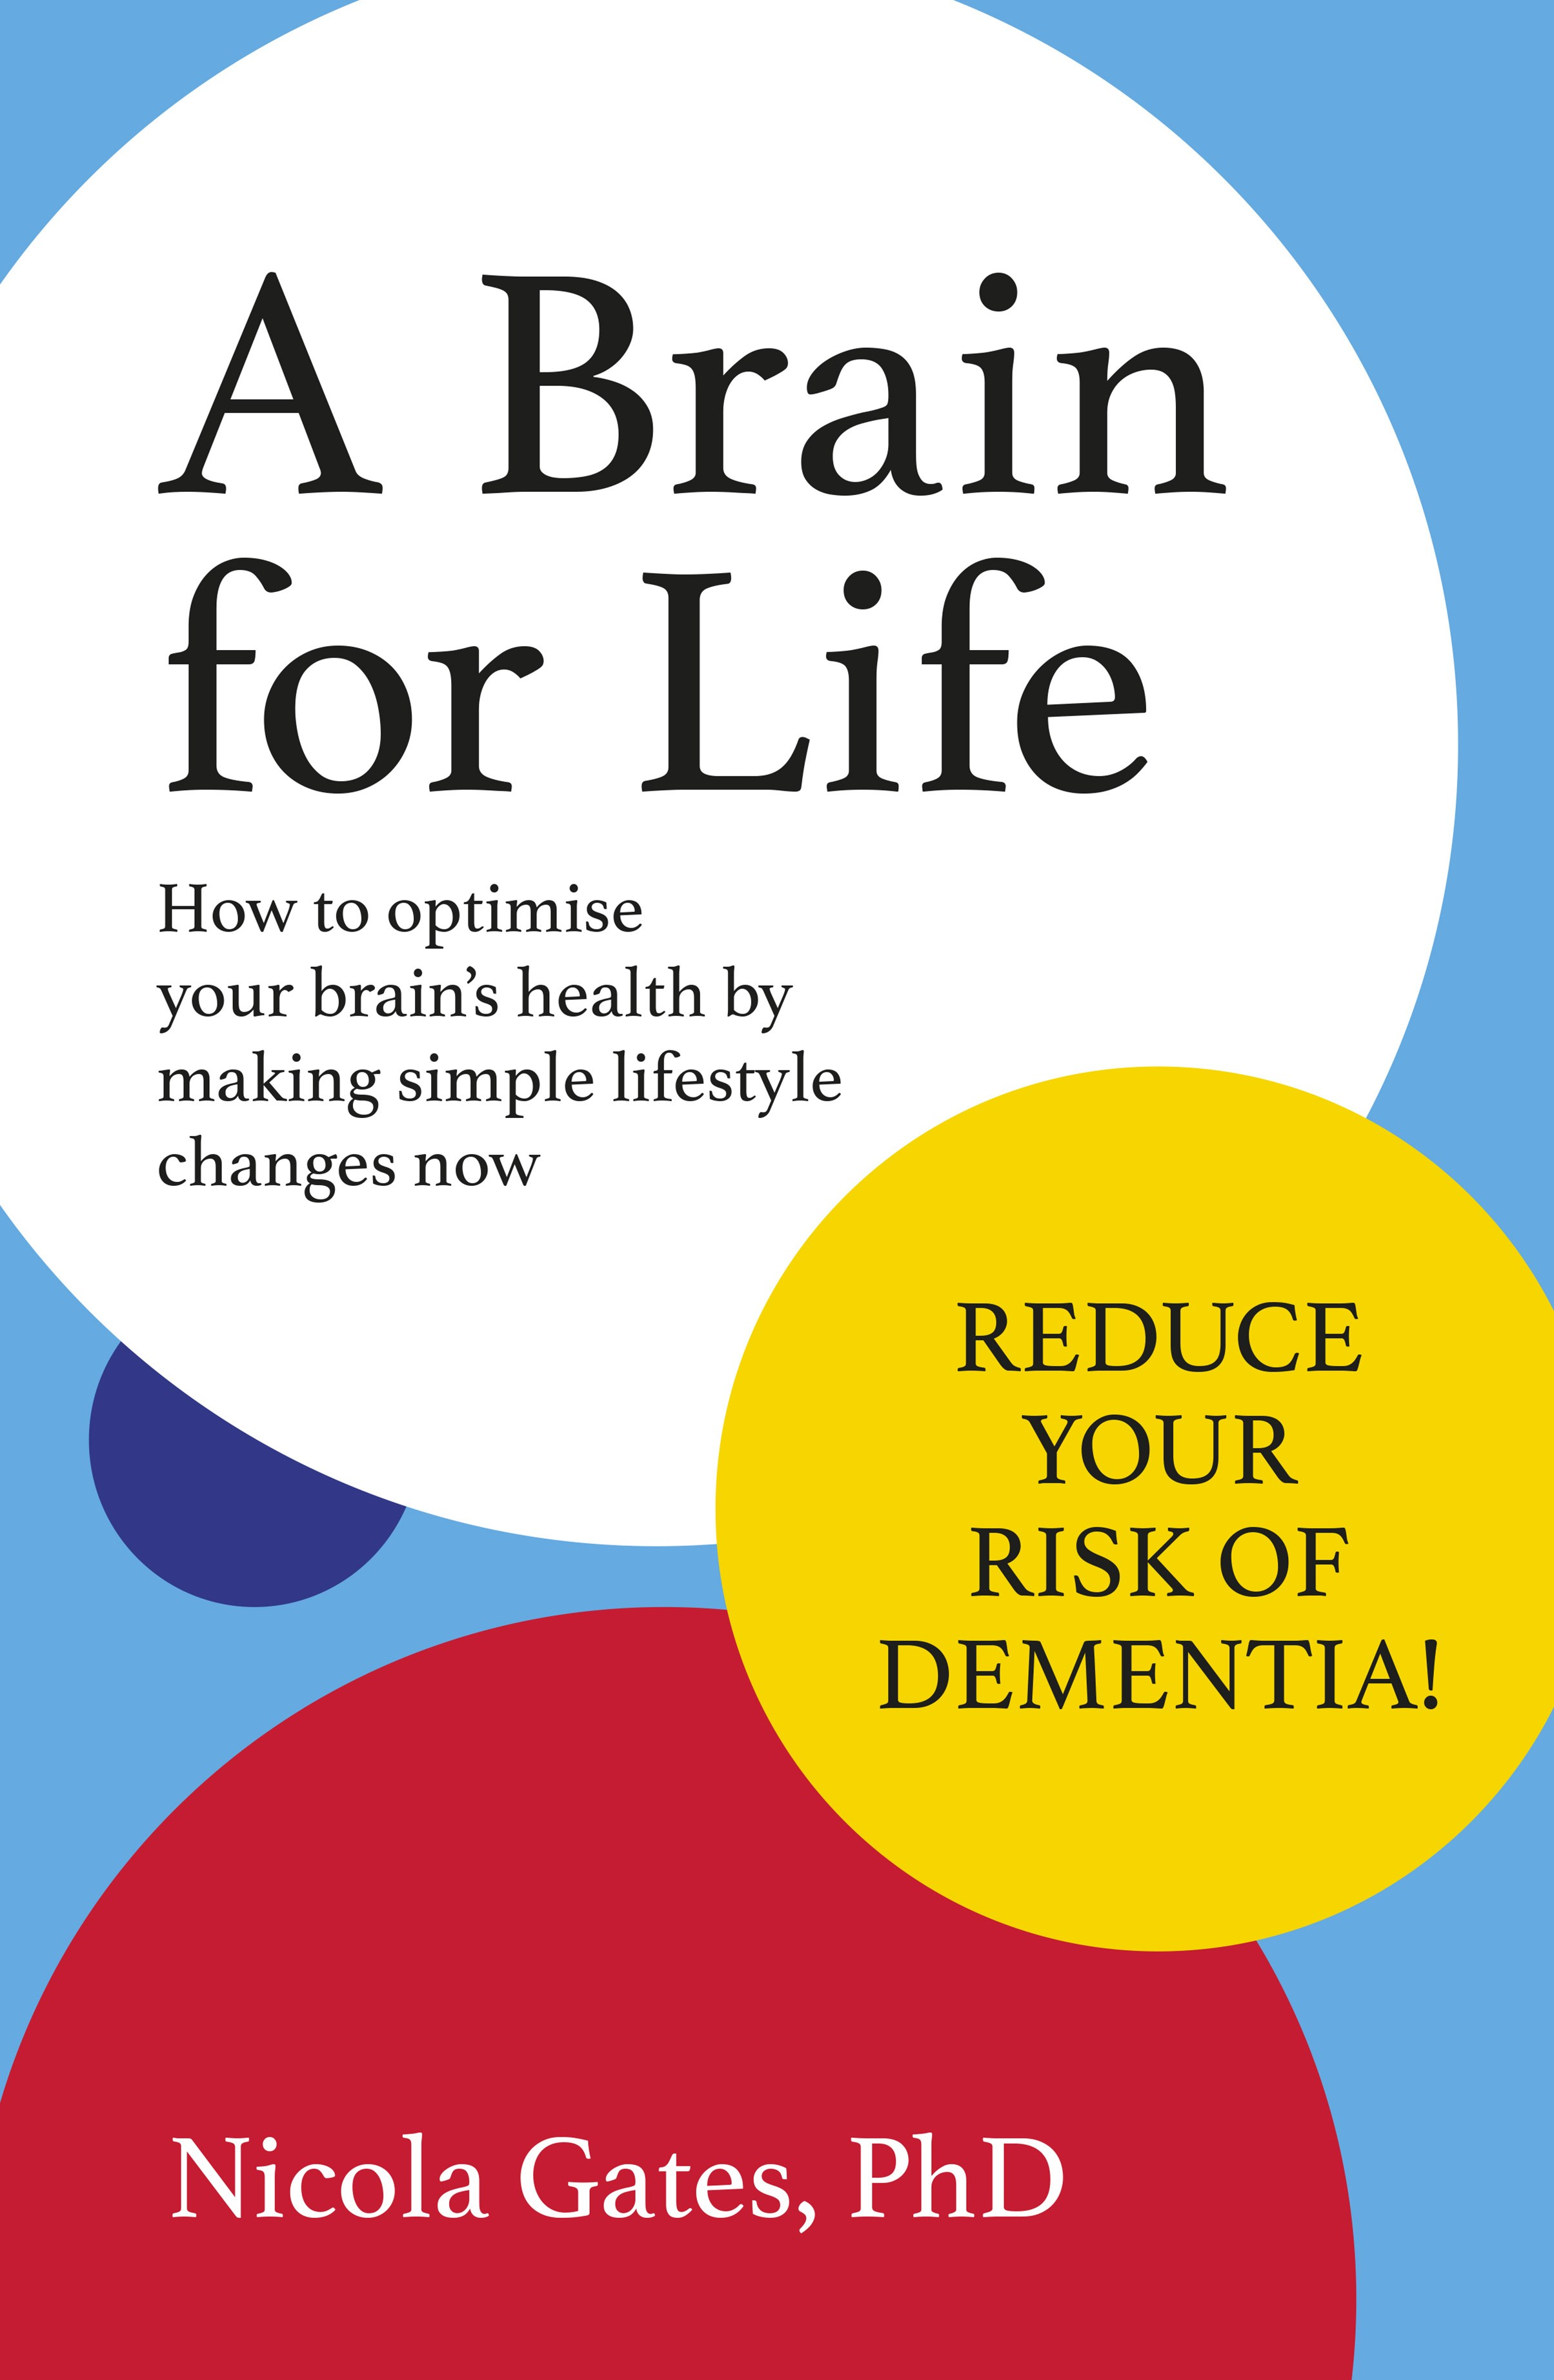 A Brain for Life: How to Optimise Your Brain Health by Making Simple Lifestyle Changes Now